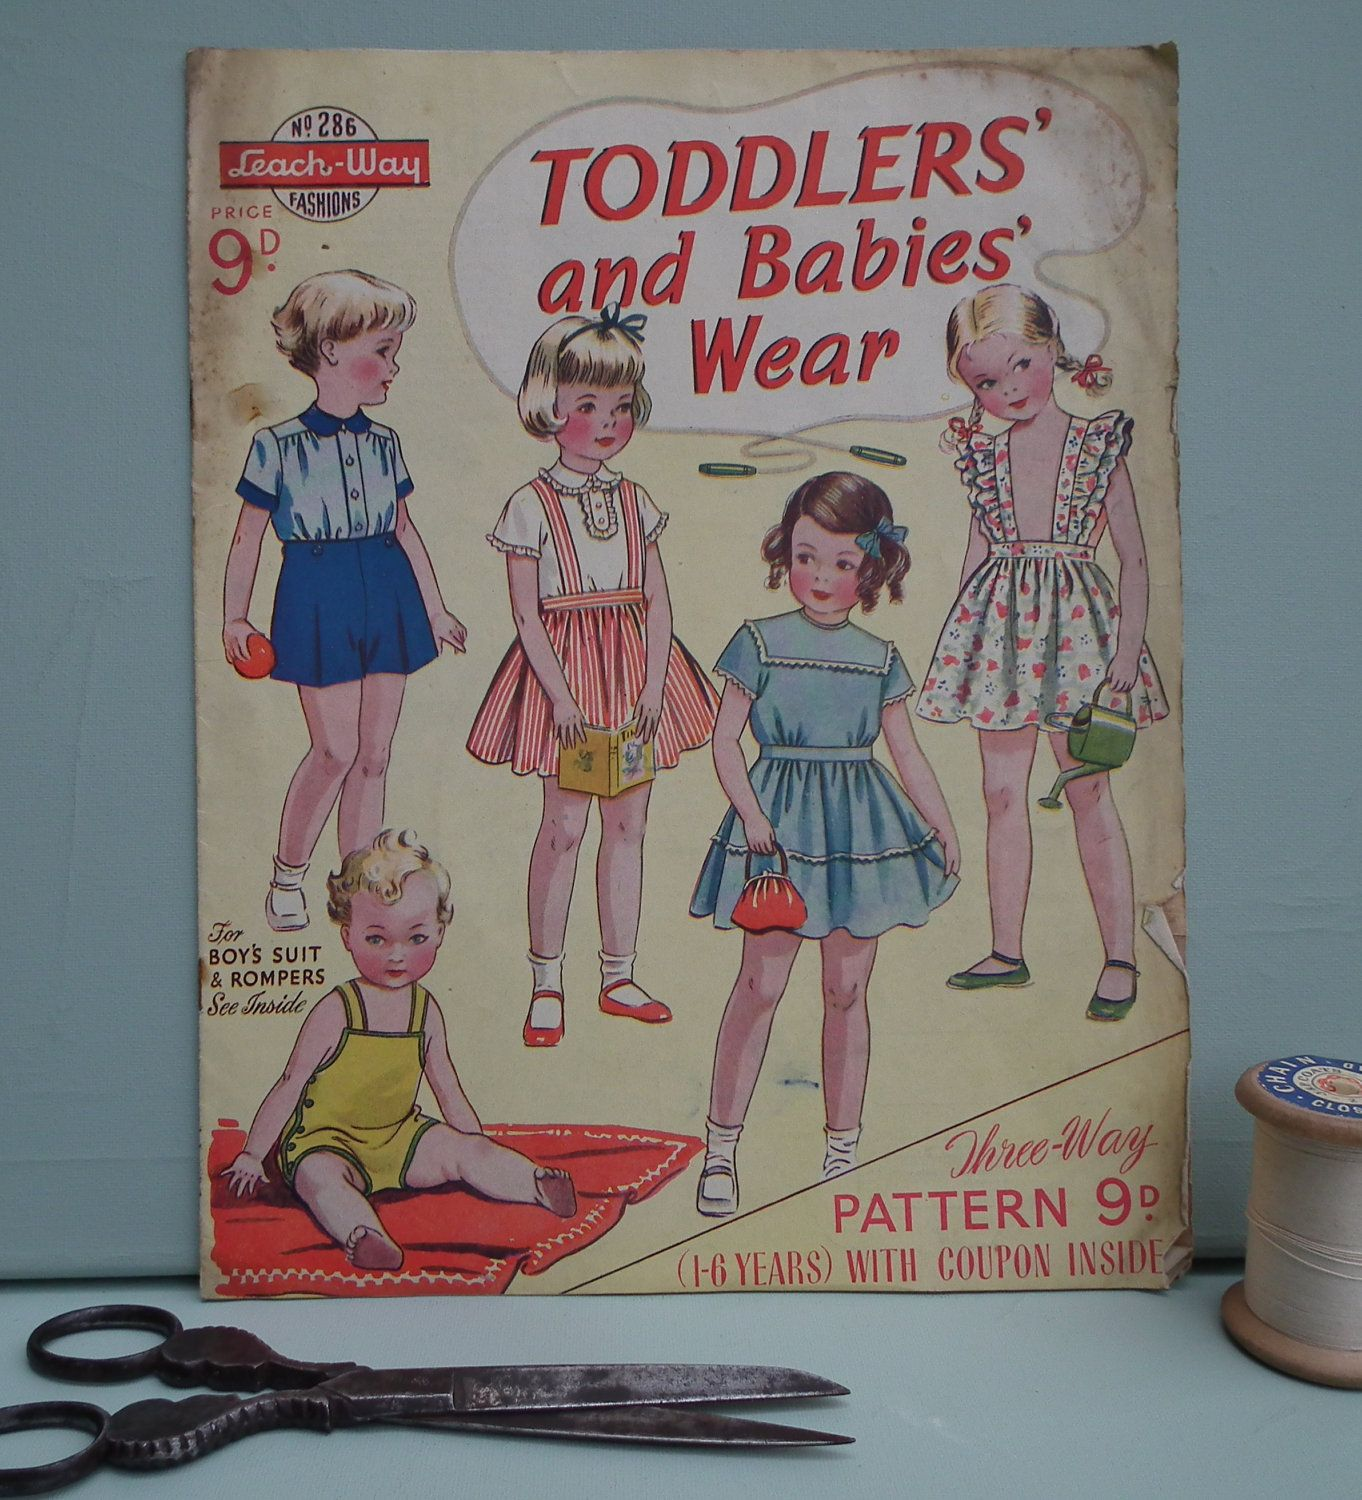 Sewing Patterns Catalog 1940s 1950s - Childrens Clothing ...